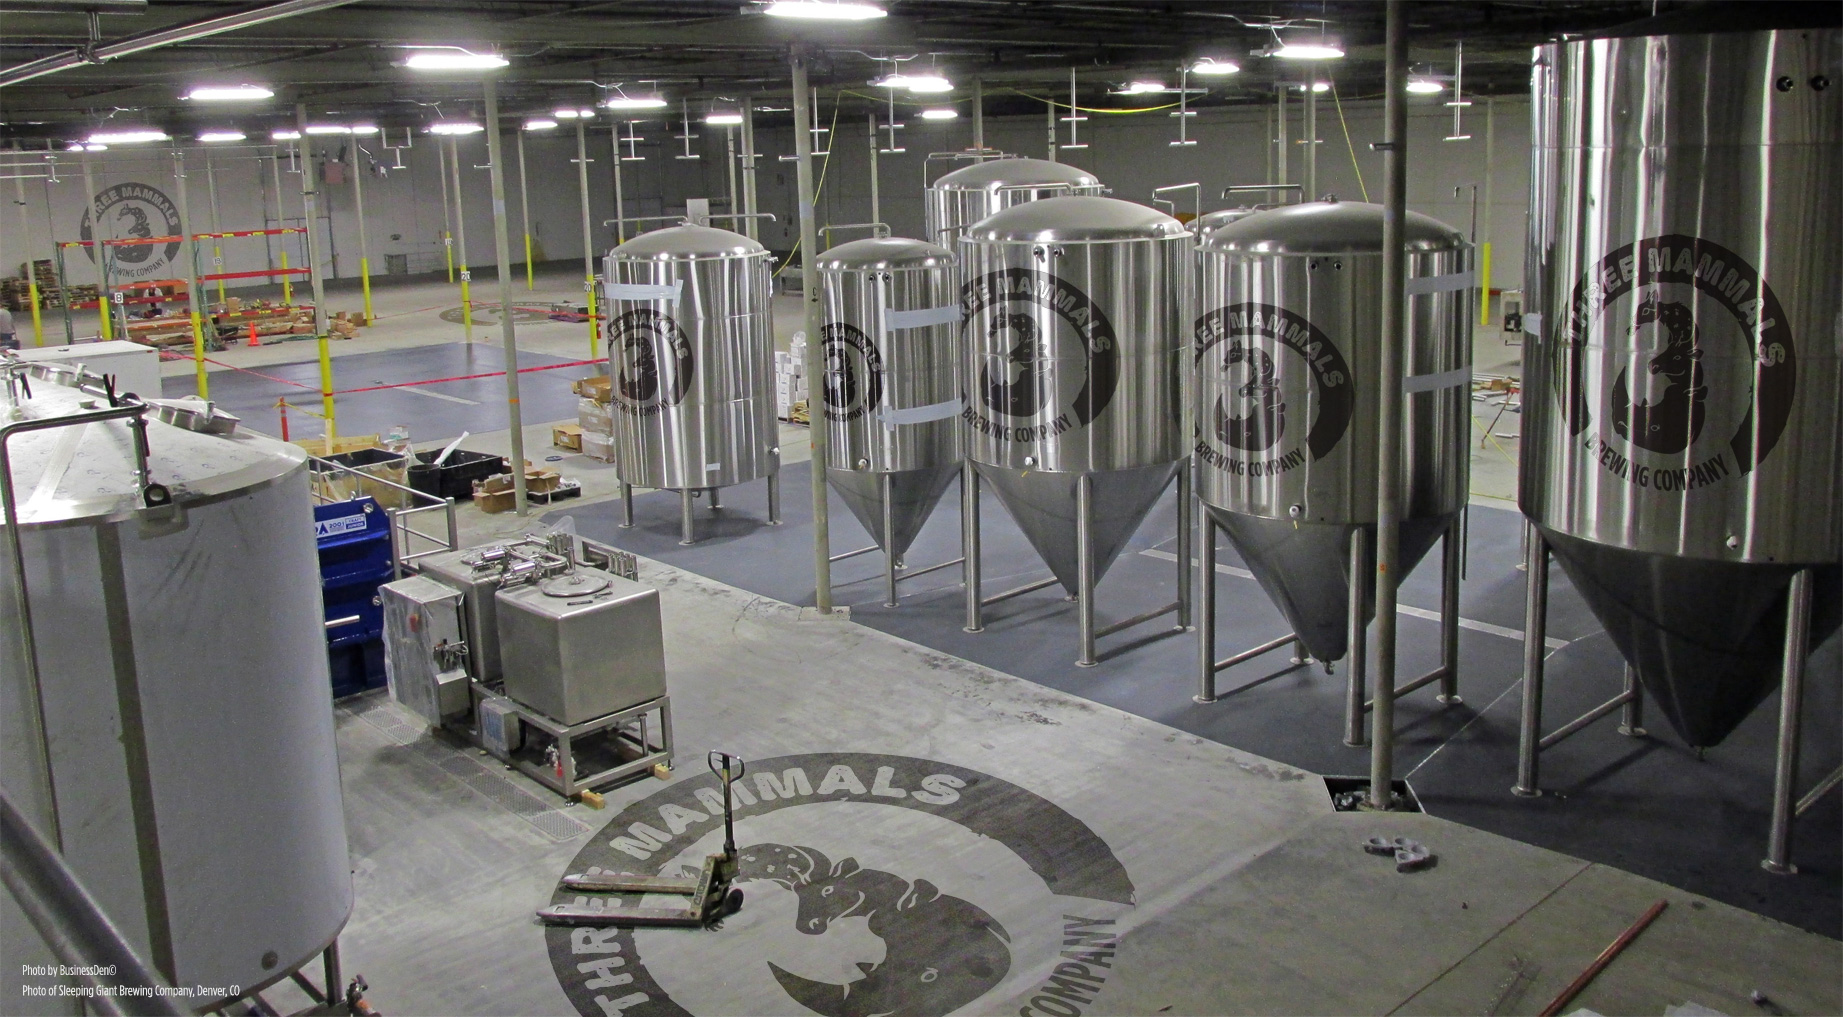 Three Mammals Brewing Company Facility